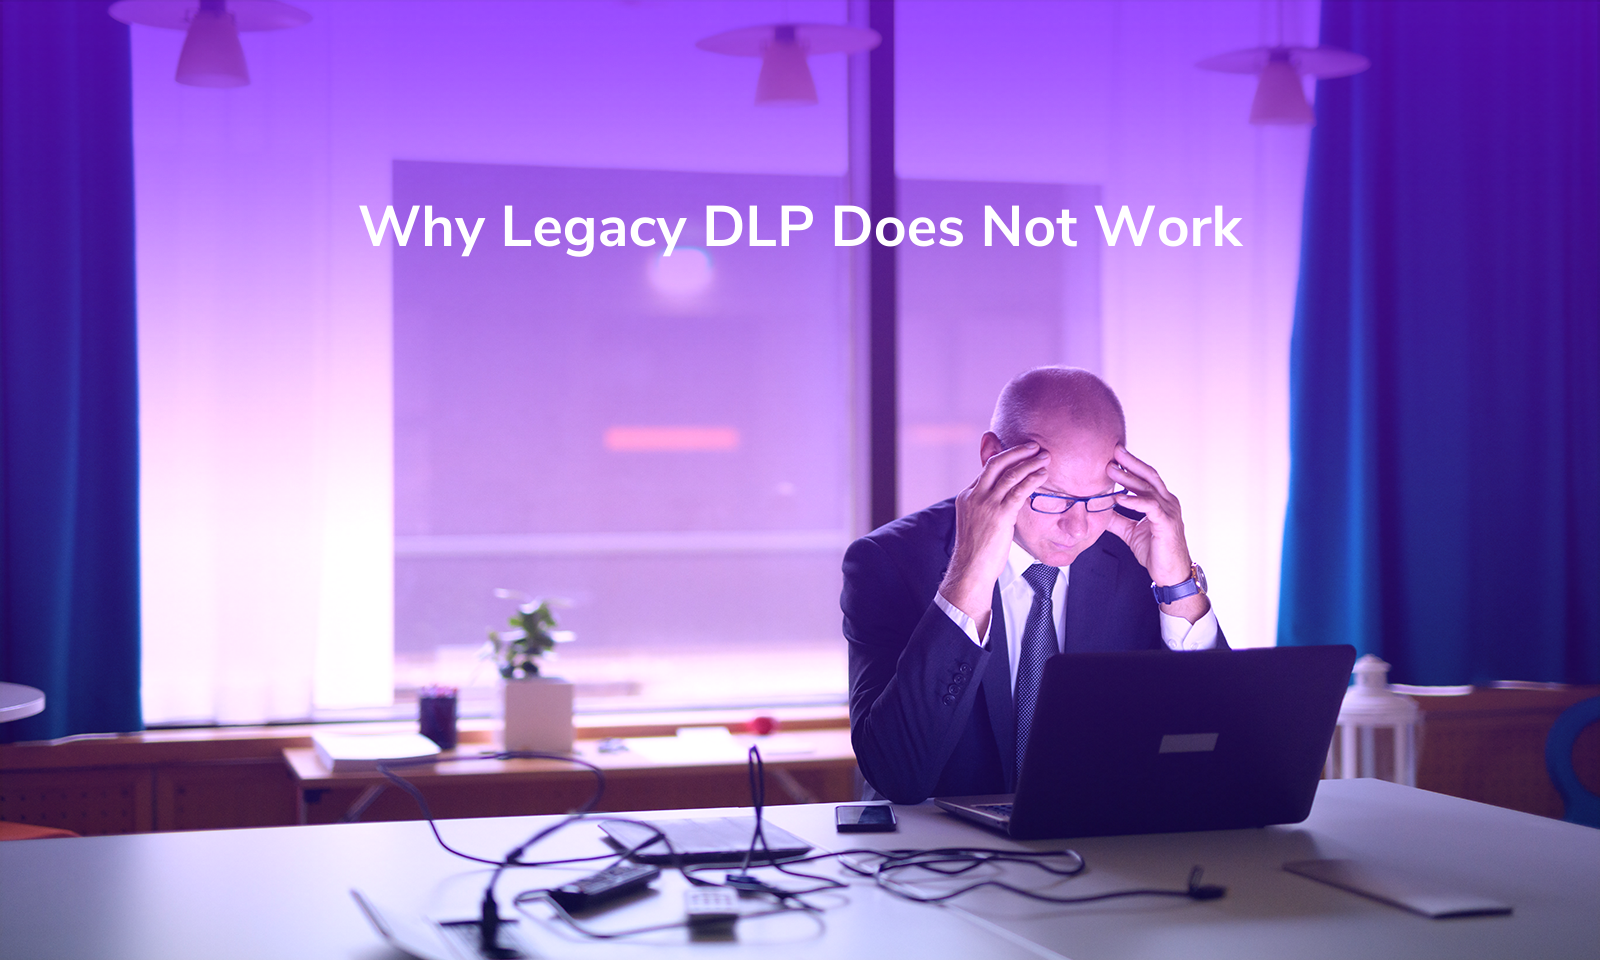 Why Legacy DLP Does Not Work